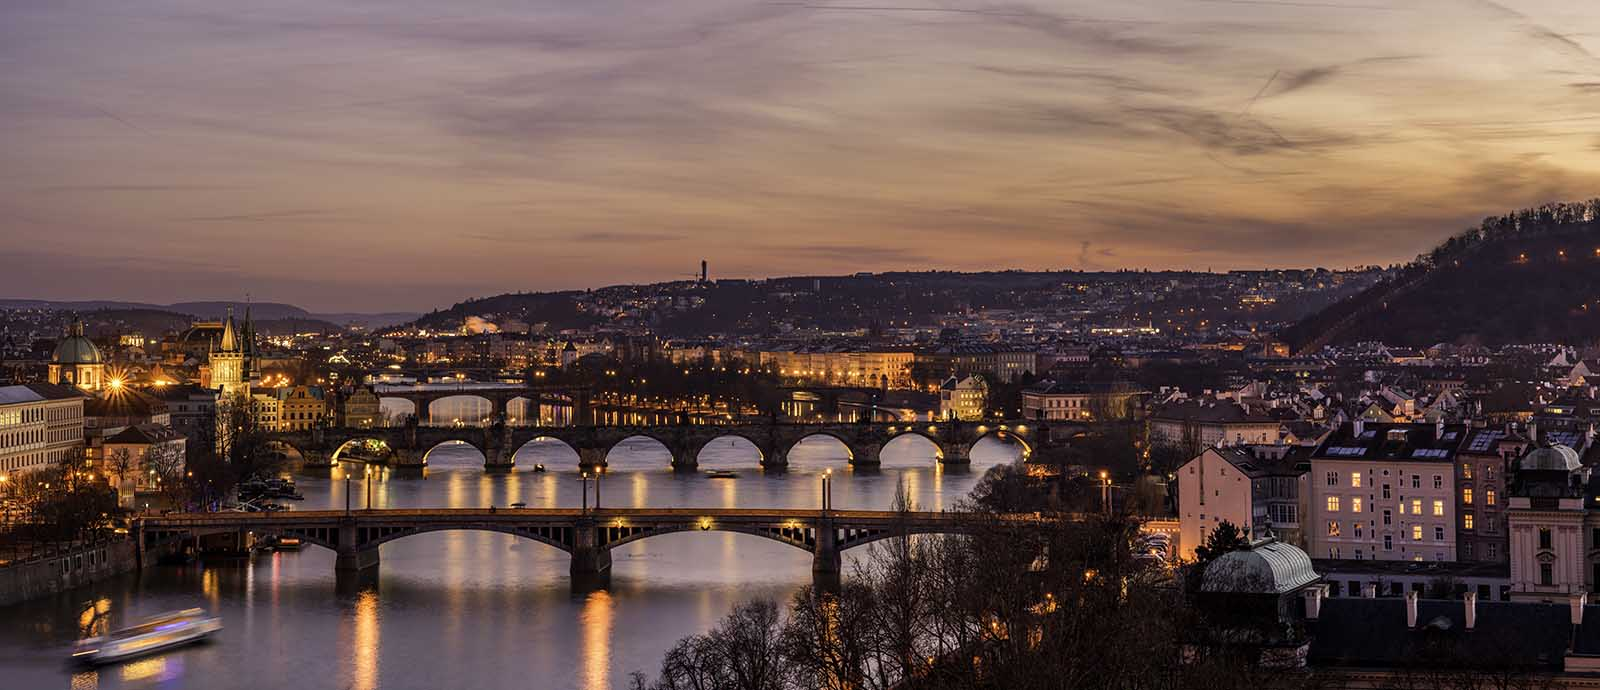 Prague-Zeiss-Cityscape-Panorama-Travel